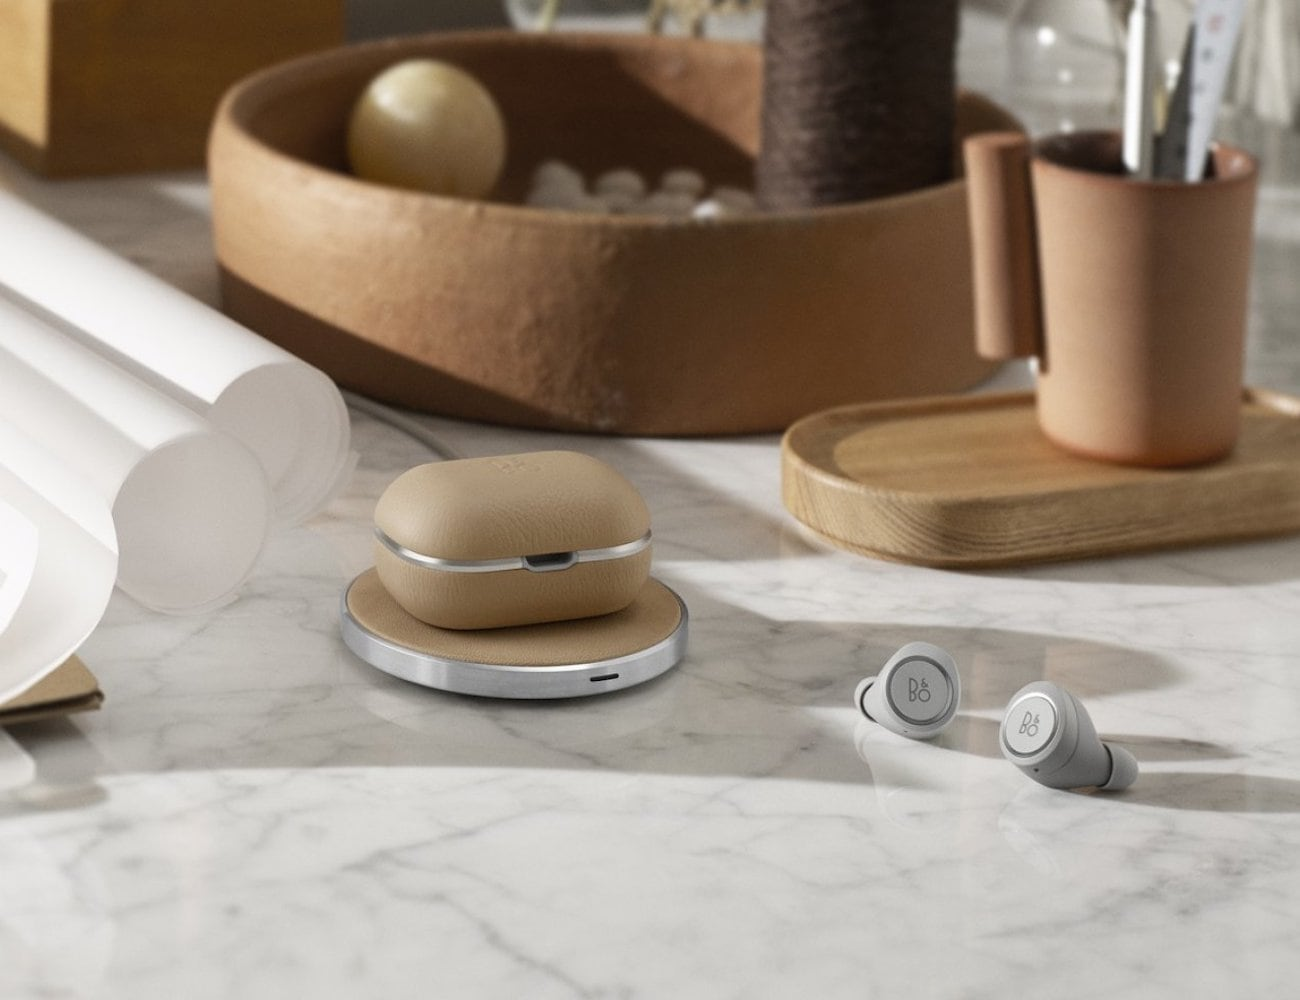 Bang & Olufsen Beoplay E8s 2.0 Wireless Earbuds loading=